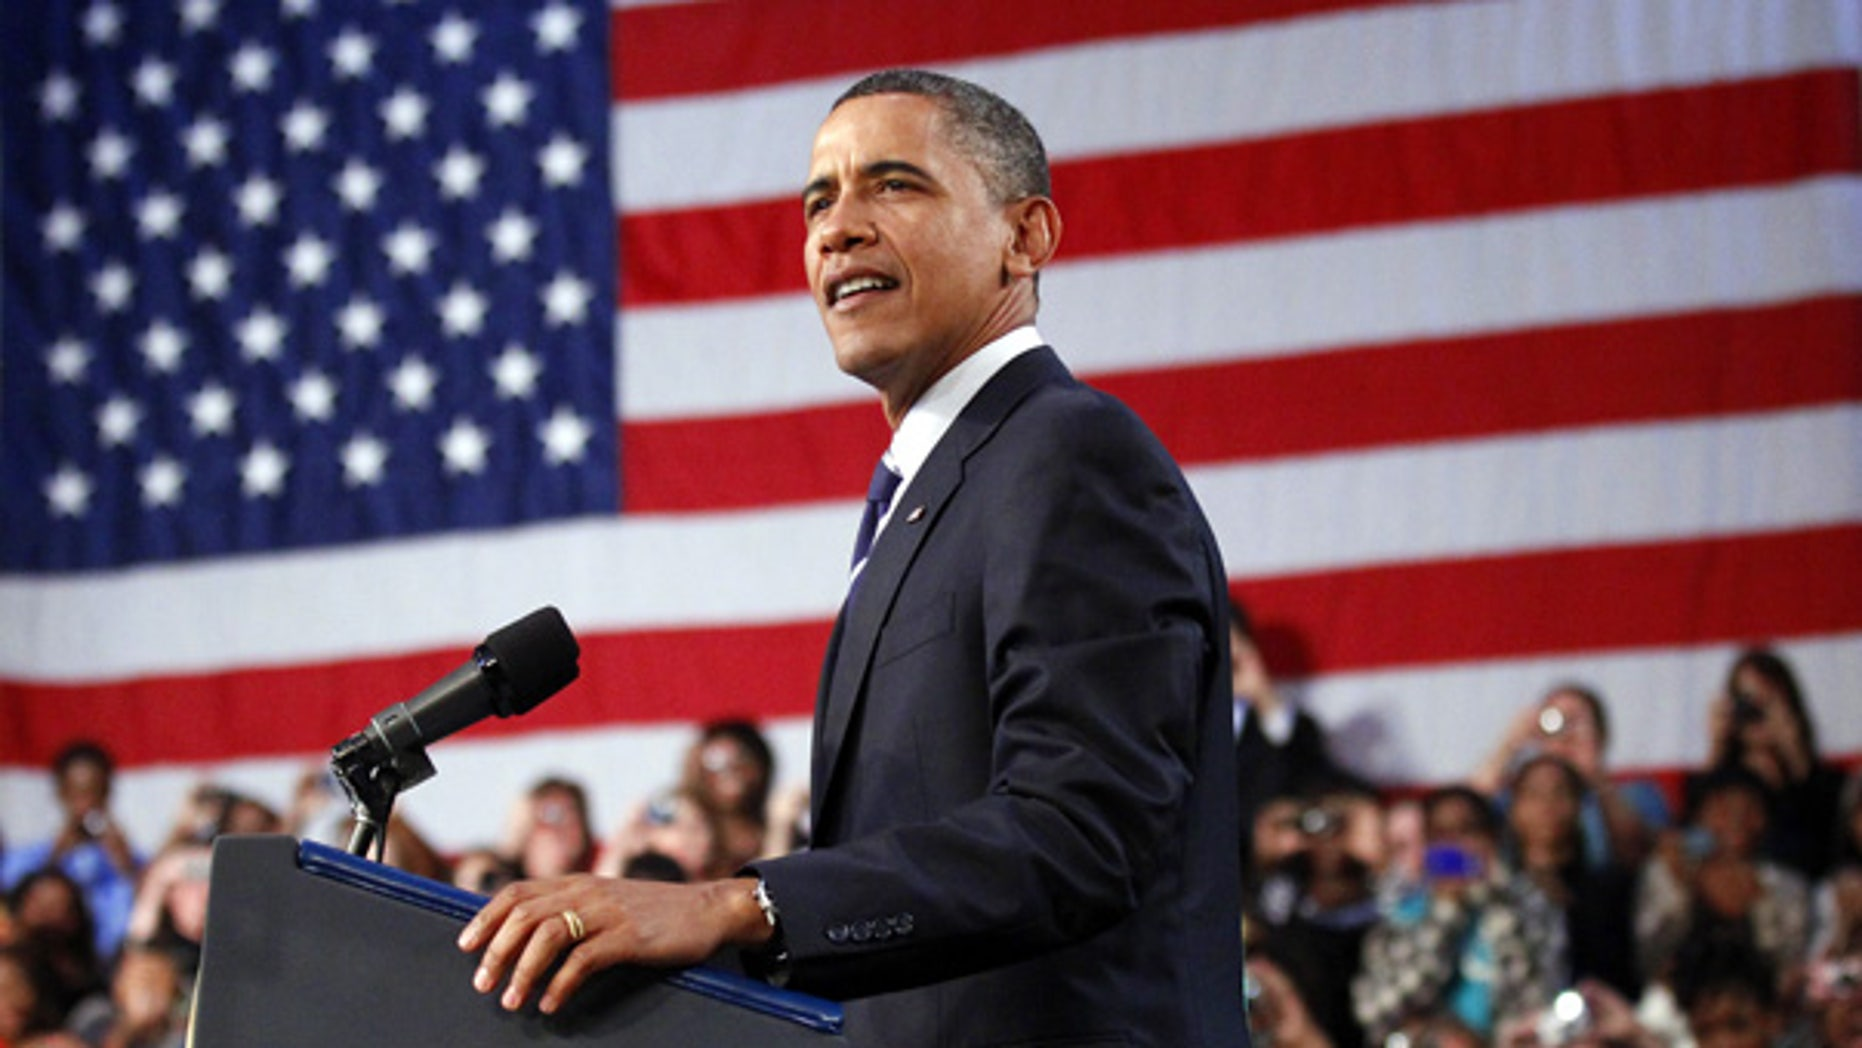 Sept. 8: President Barack Obama delivers remarks on the economy at Cuyahoga Community College in Parma, Ohio.